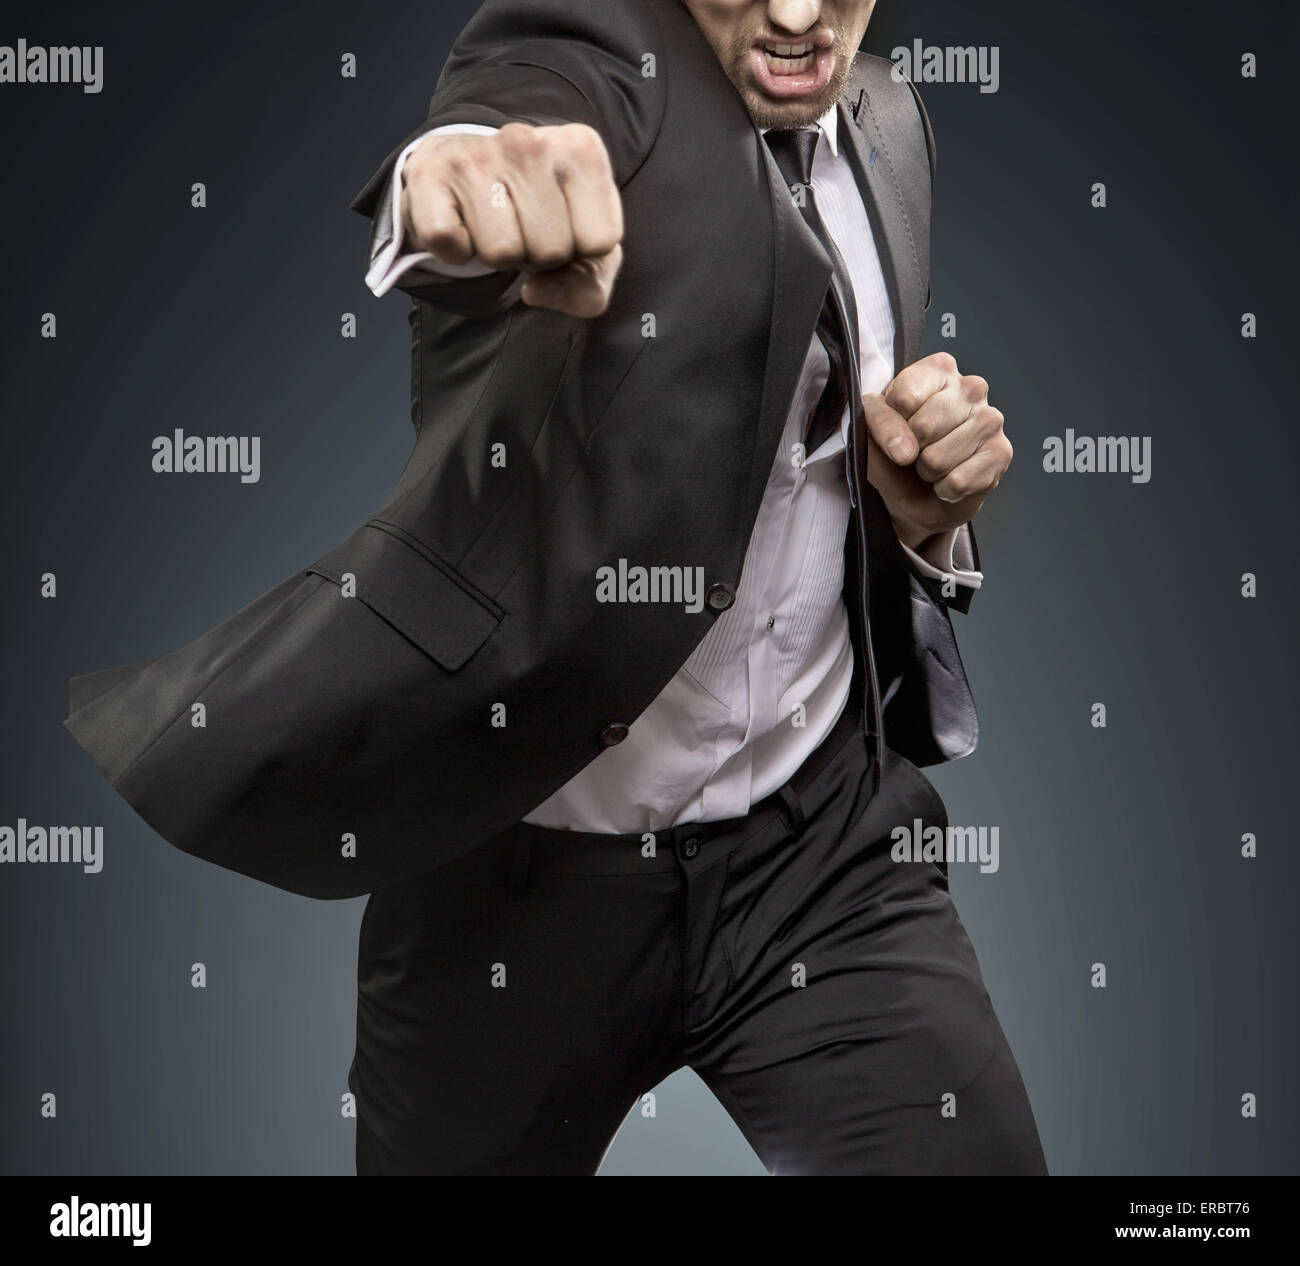 Brave manager fighting against challengers - Stock Image